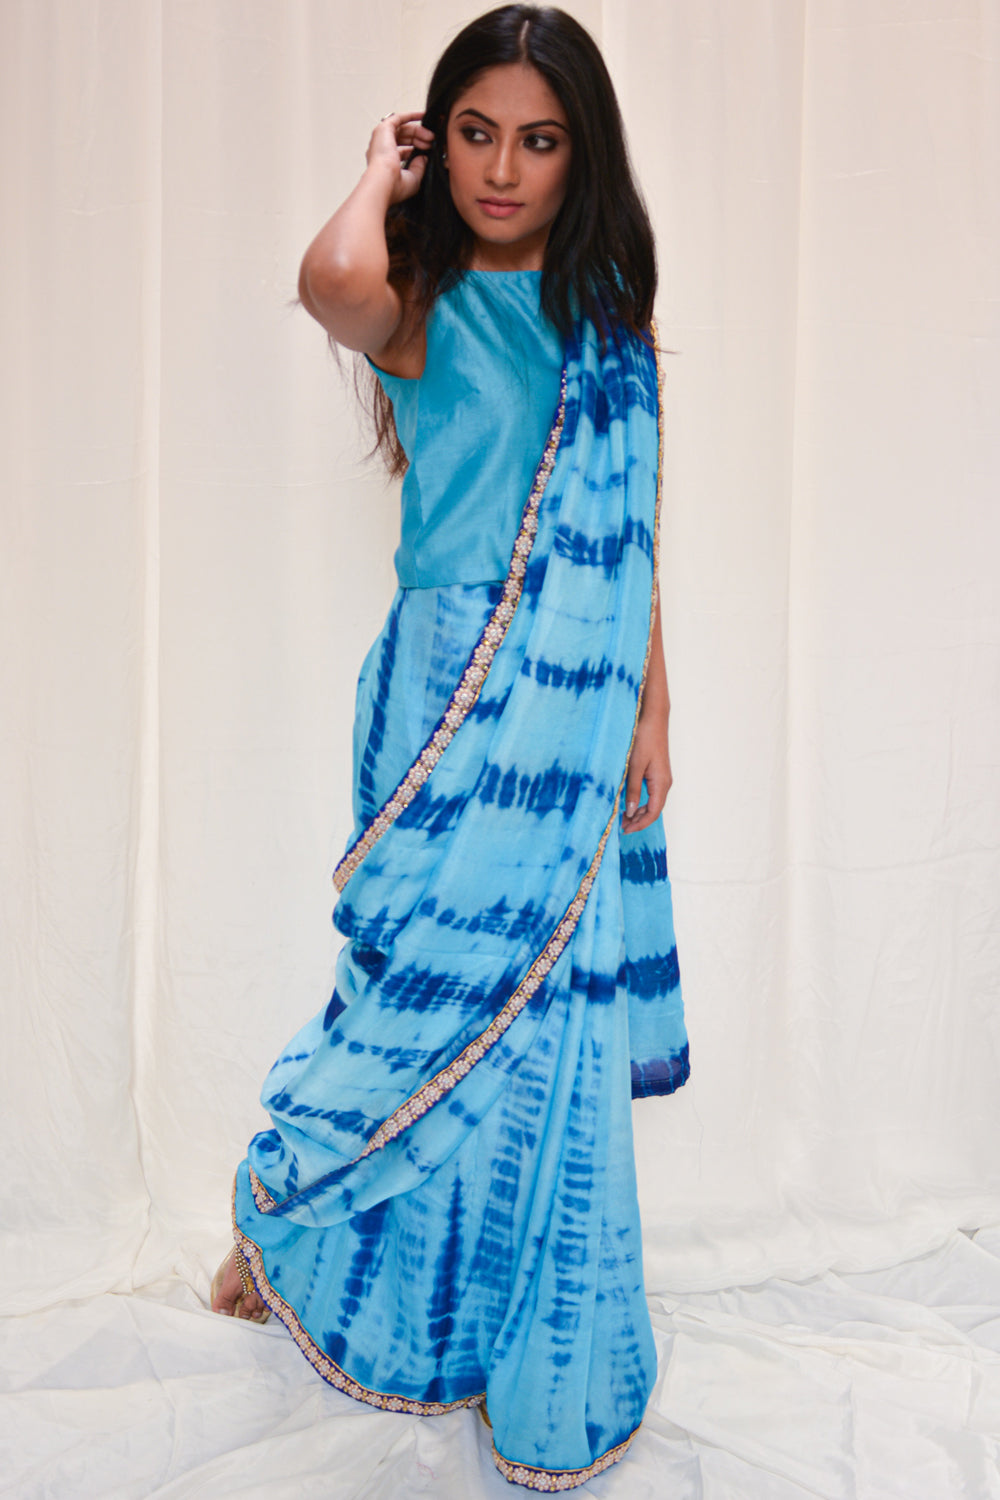 Sky blue shibori shaded jute georgette saree with blue embellished border